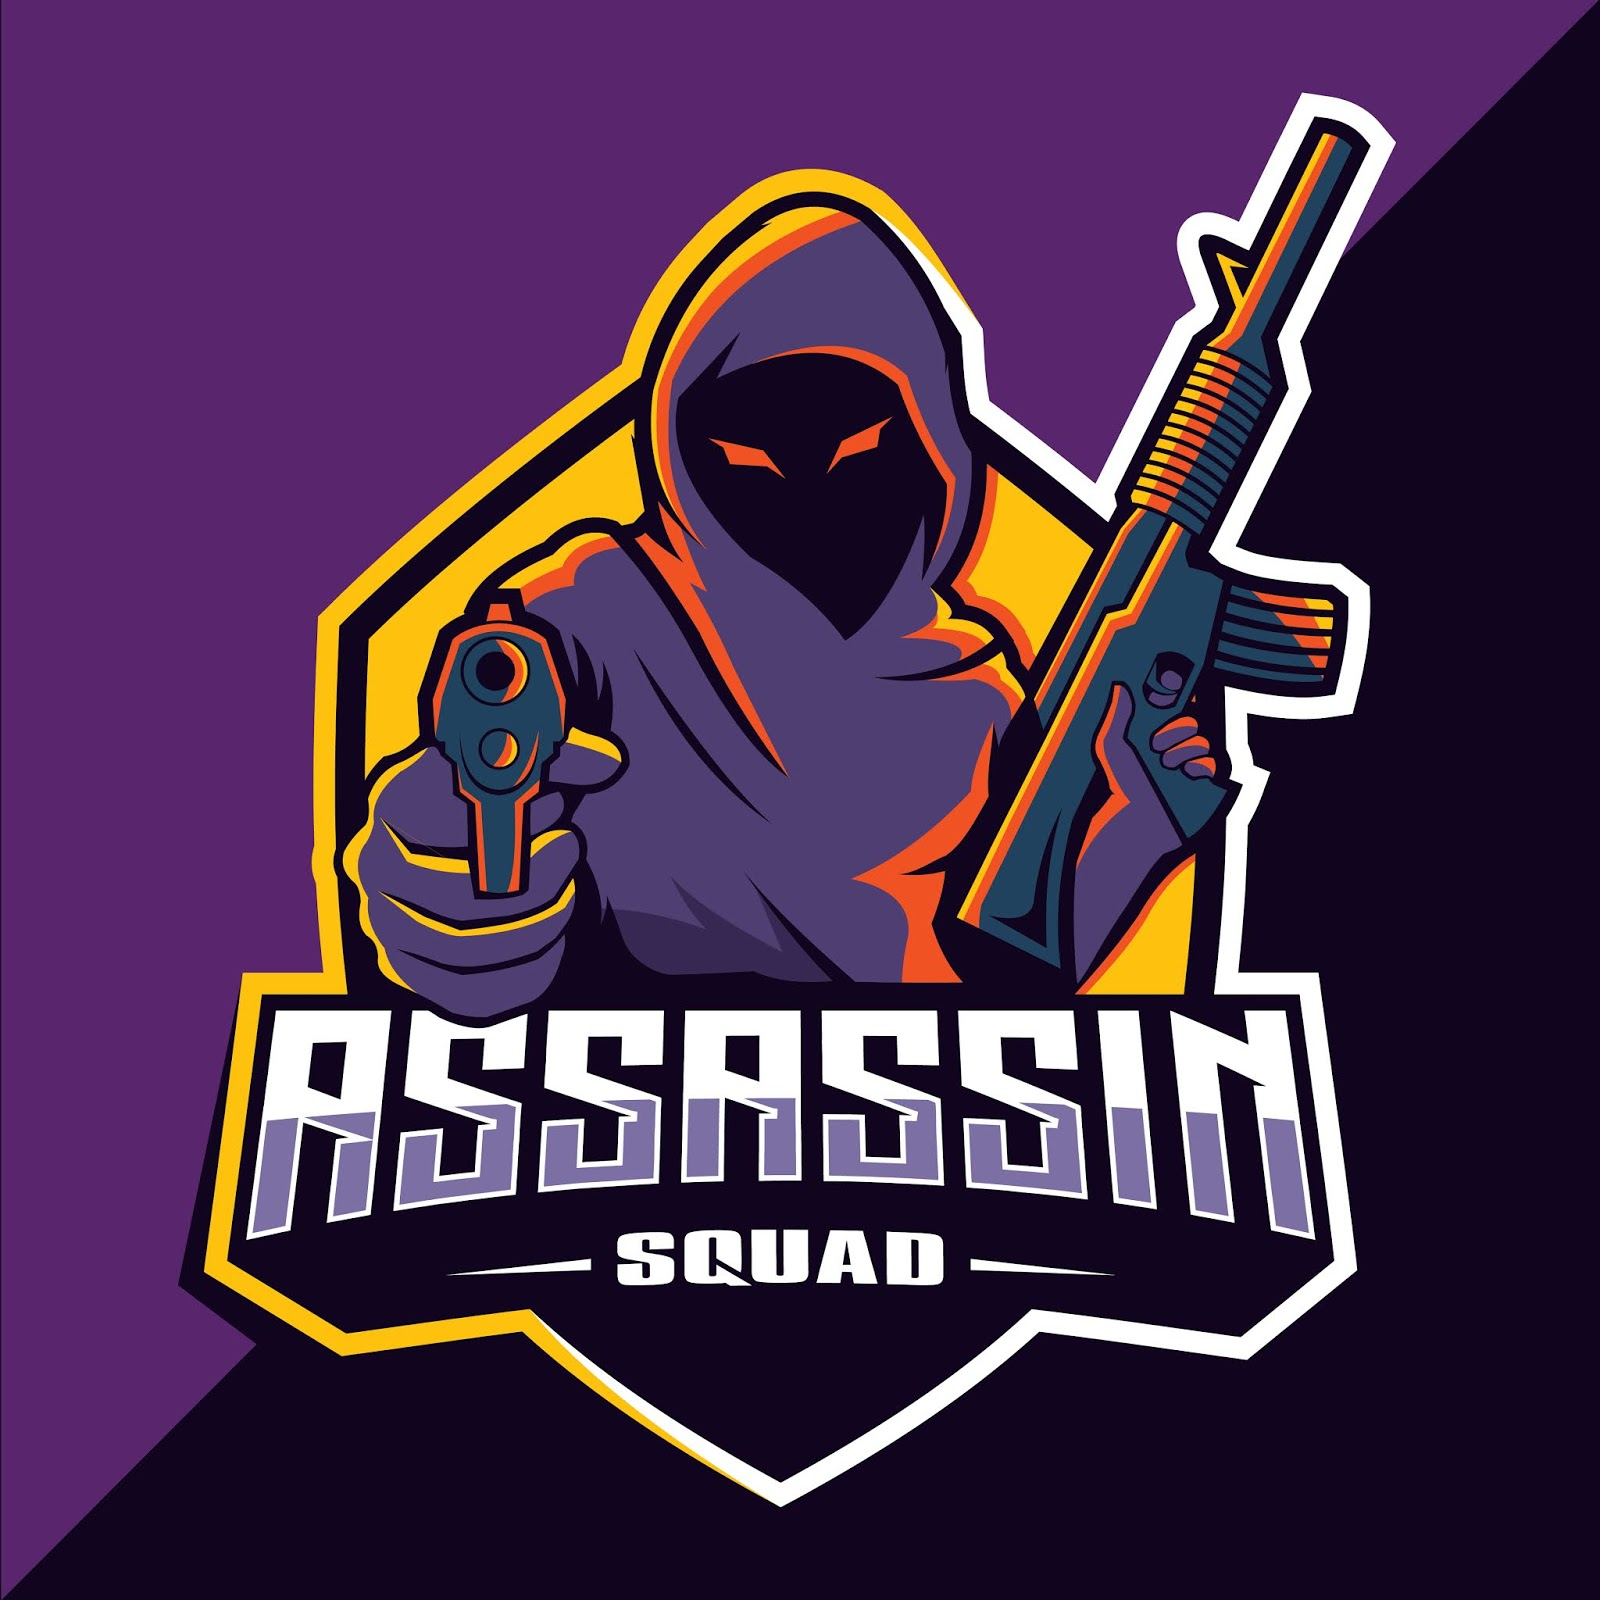 Assassin With Guns Mascot Esport Free Download Vector CDR, AI, EPS and PNG Formats